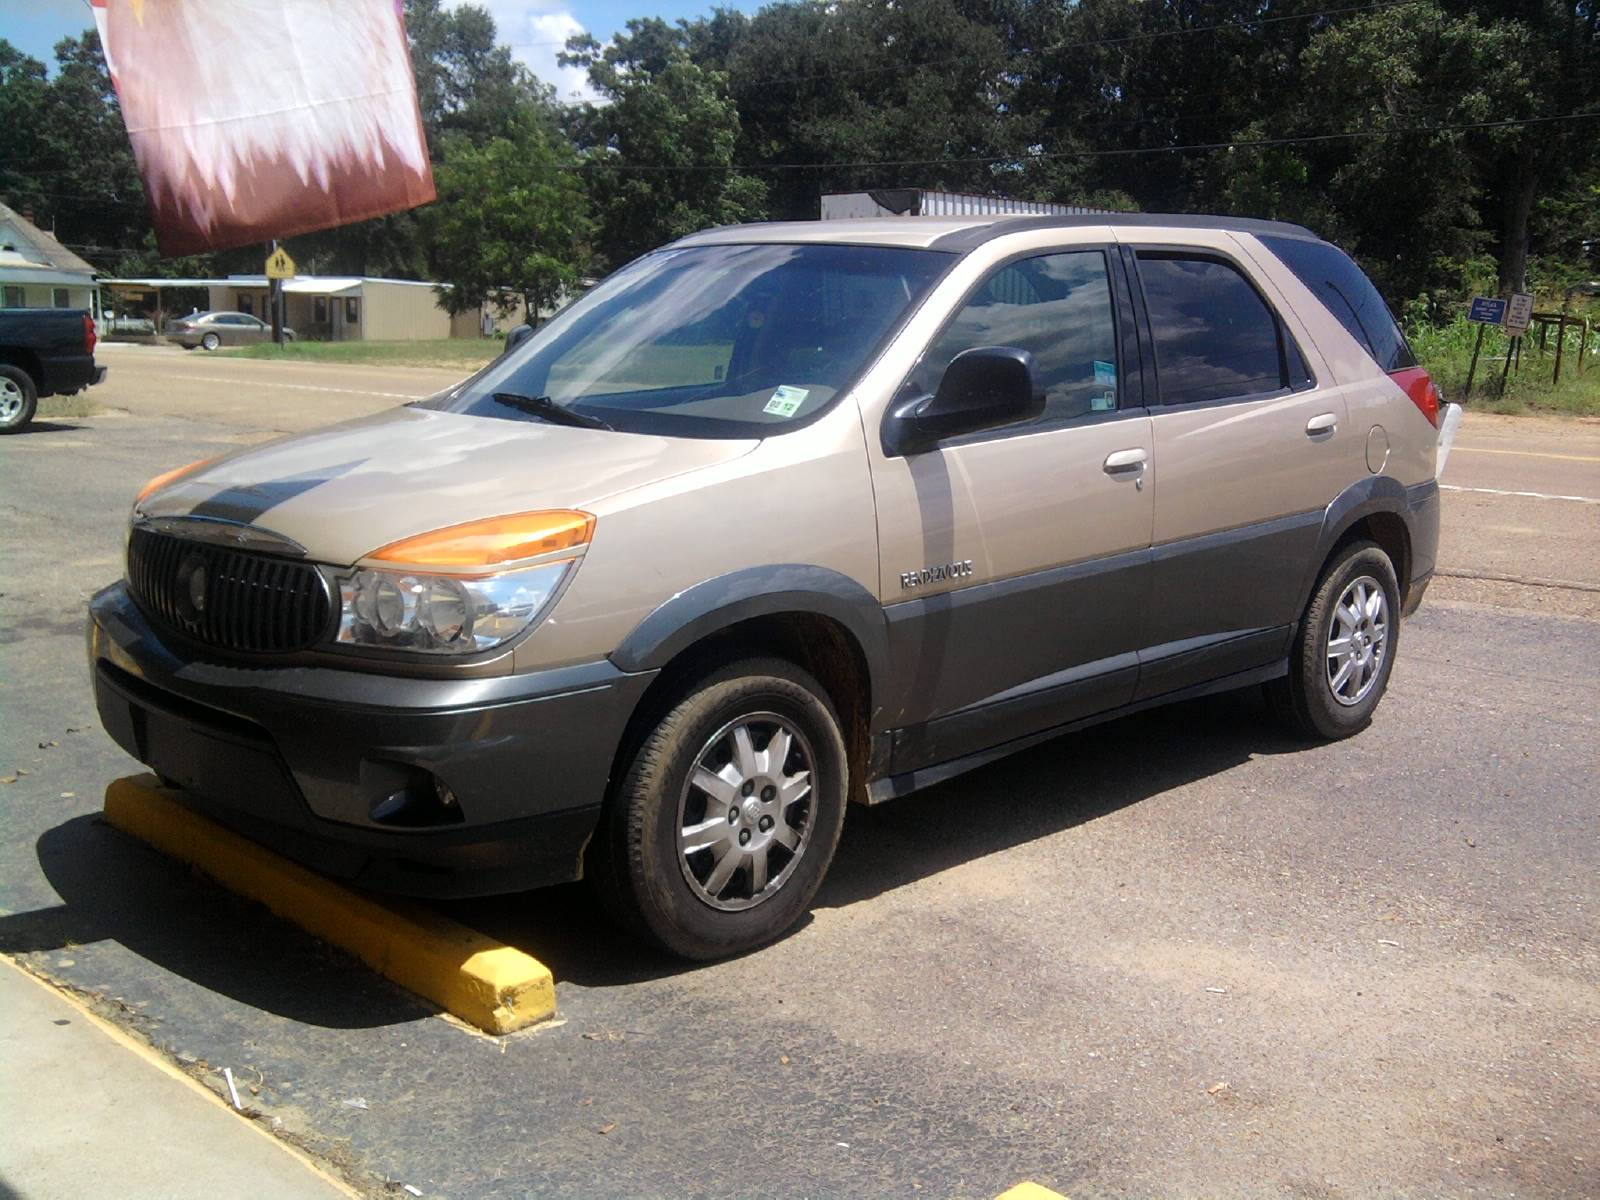 2004 buick rendezvous cxl all wheel drive 4 spd auto w od - Buick rendezvous interior dimensions ...